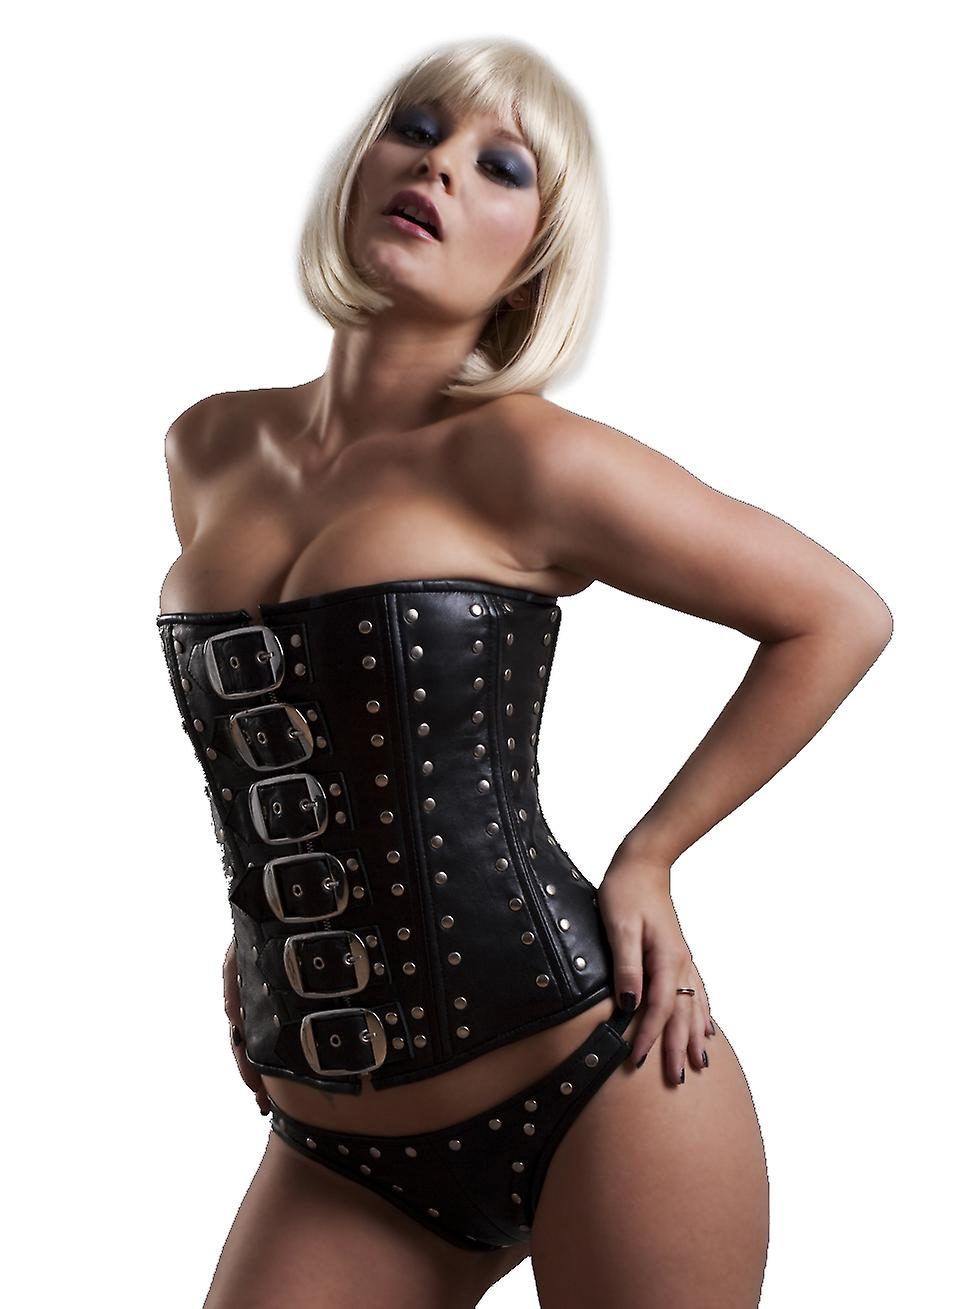 Honour Women's Studded Overbust Corset in Black Leather Sexy Fetish Fashion